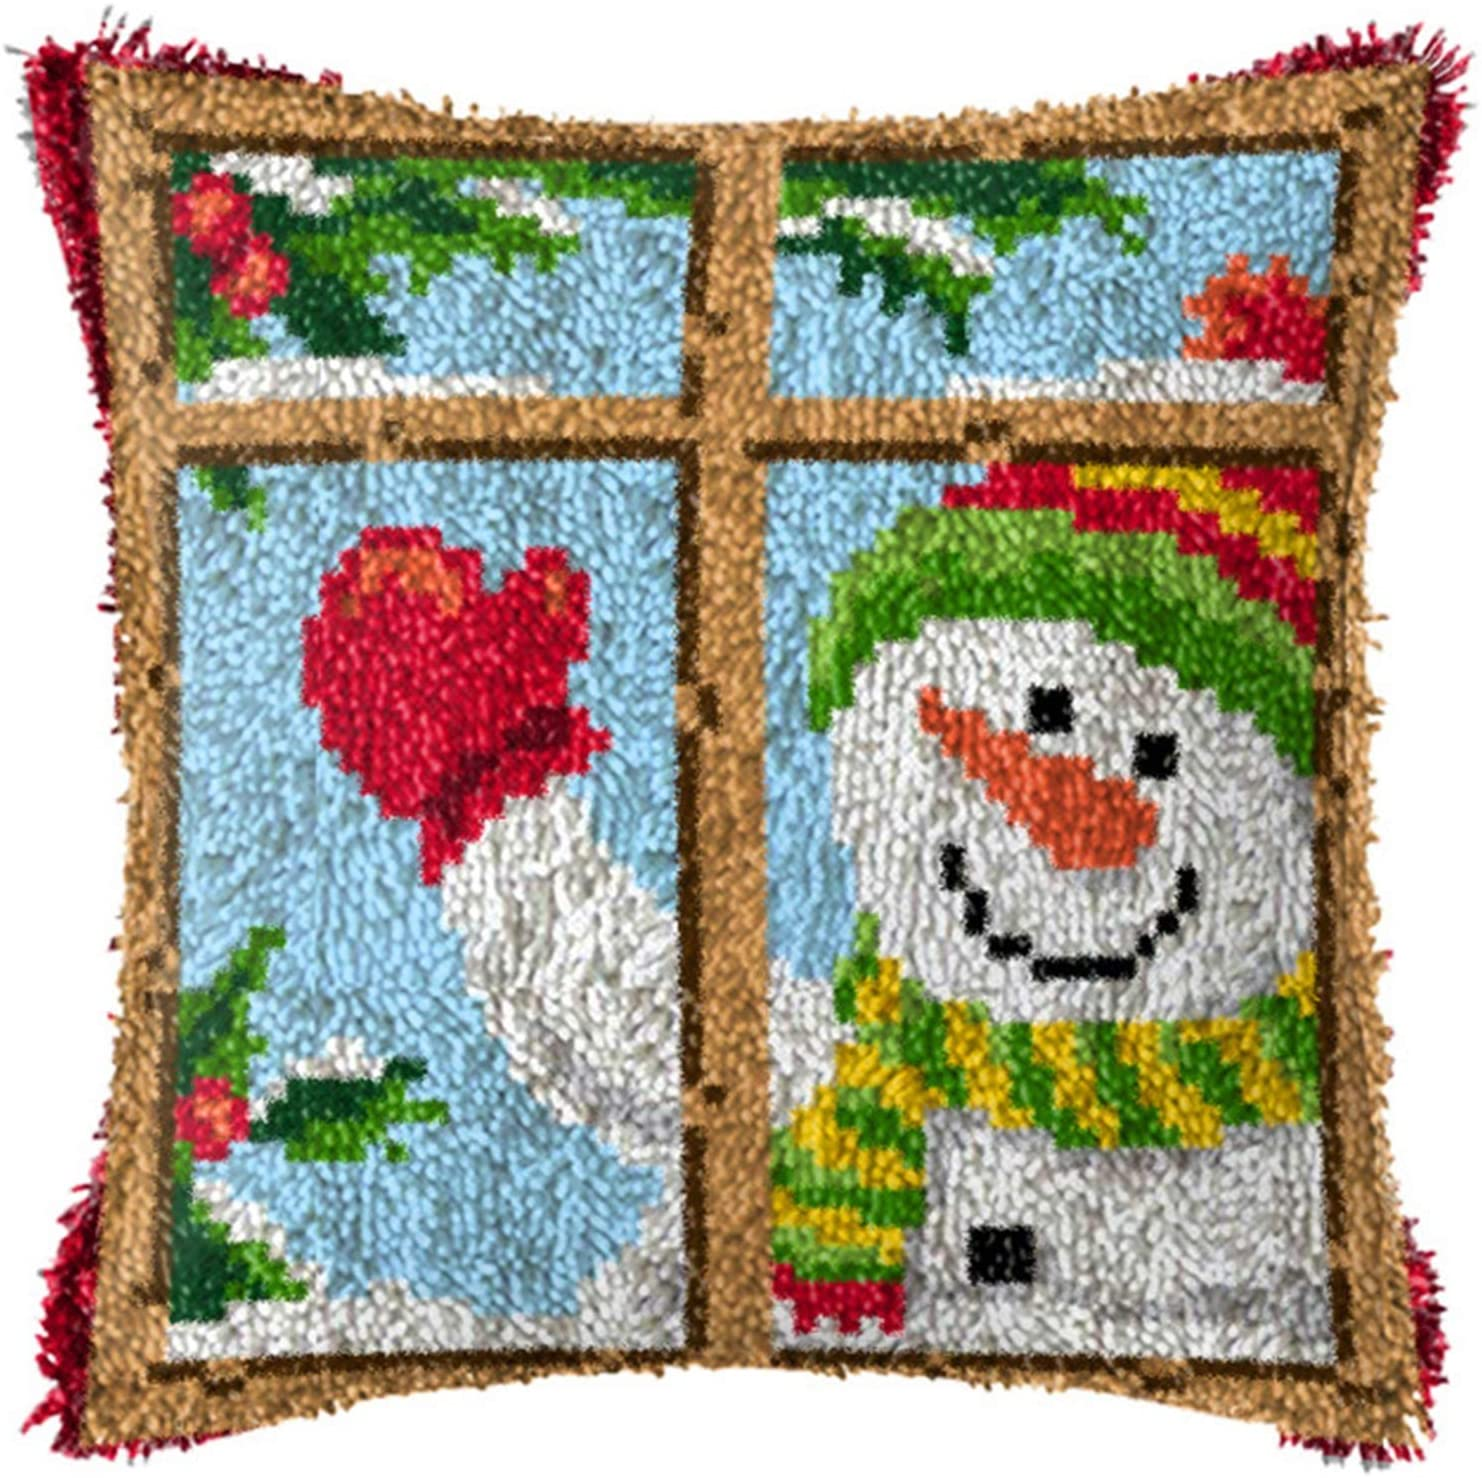 QJBMEI Latch Hook Kits, Snowman Printed DIY Pillow Cover Making Crafts Kit with Canvas for Kids/Adults and Beginner, 16.9X16.9 Inch,Bz632,43 × 43CM